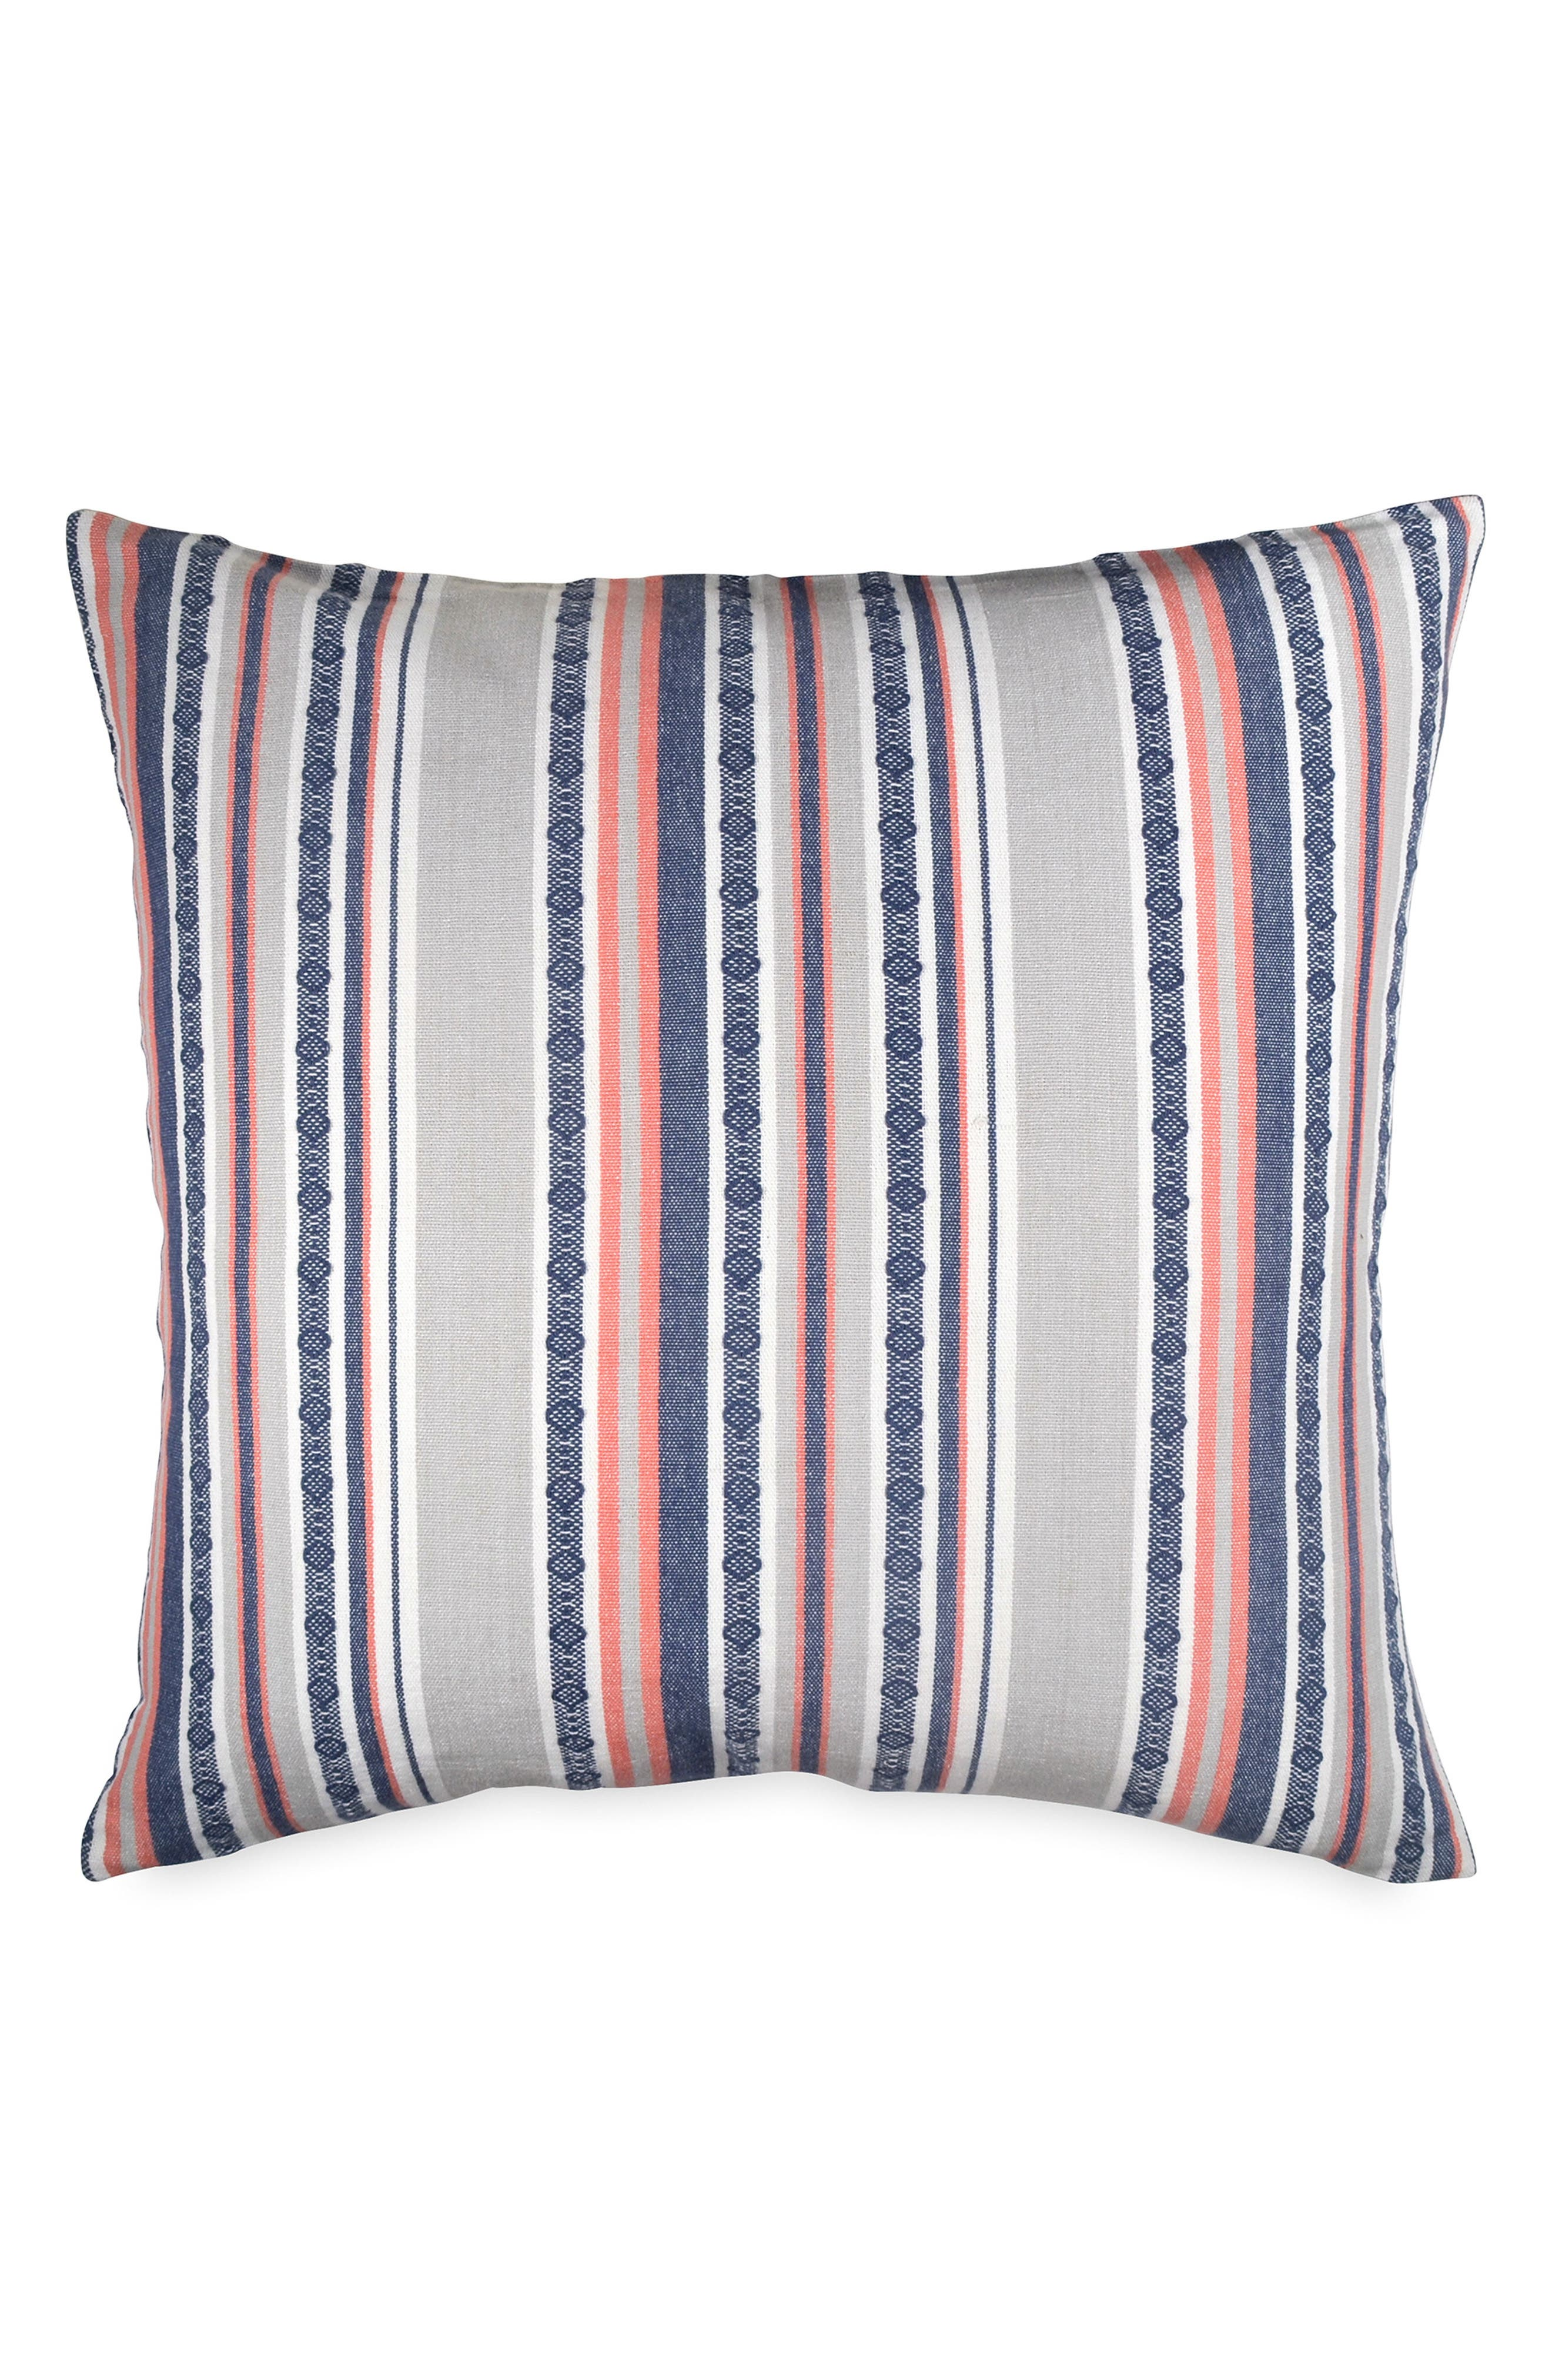 Alternate Image 1 Selected - Hang Ten Woven Accent Pillow